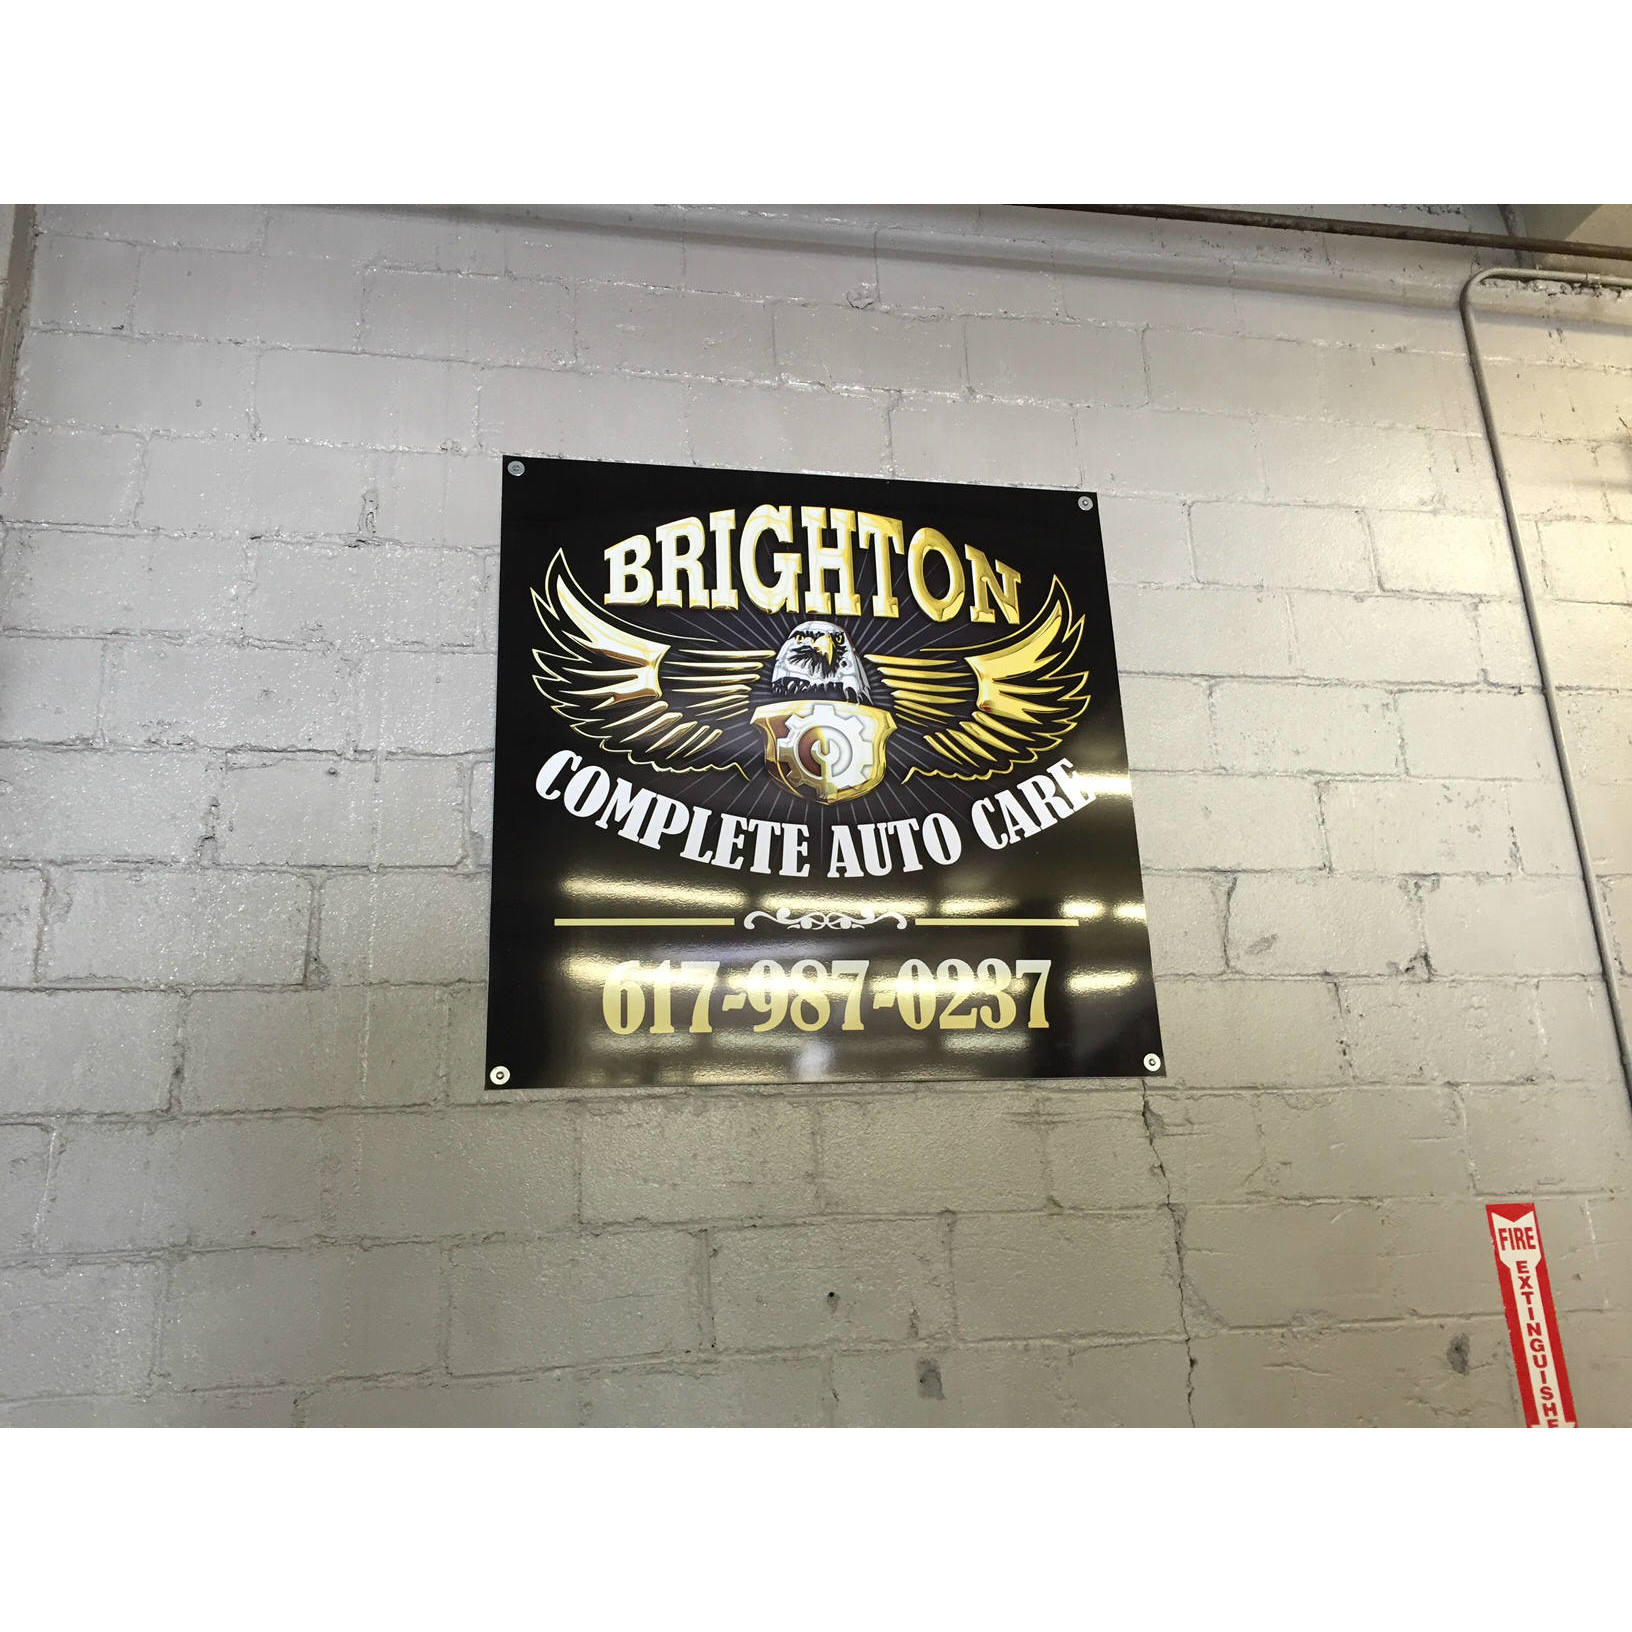 Brighton Complete Auto Care